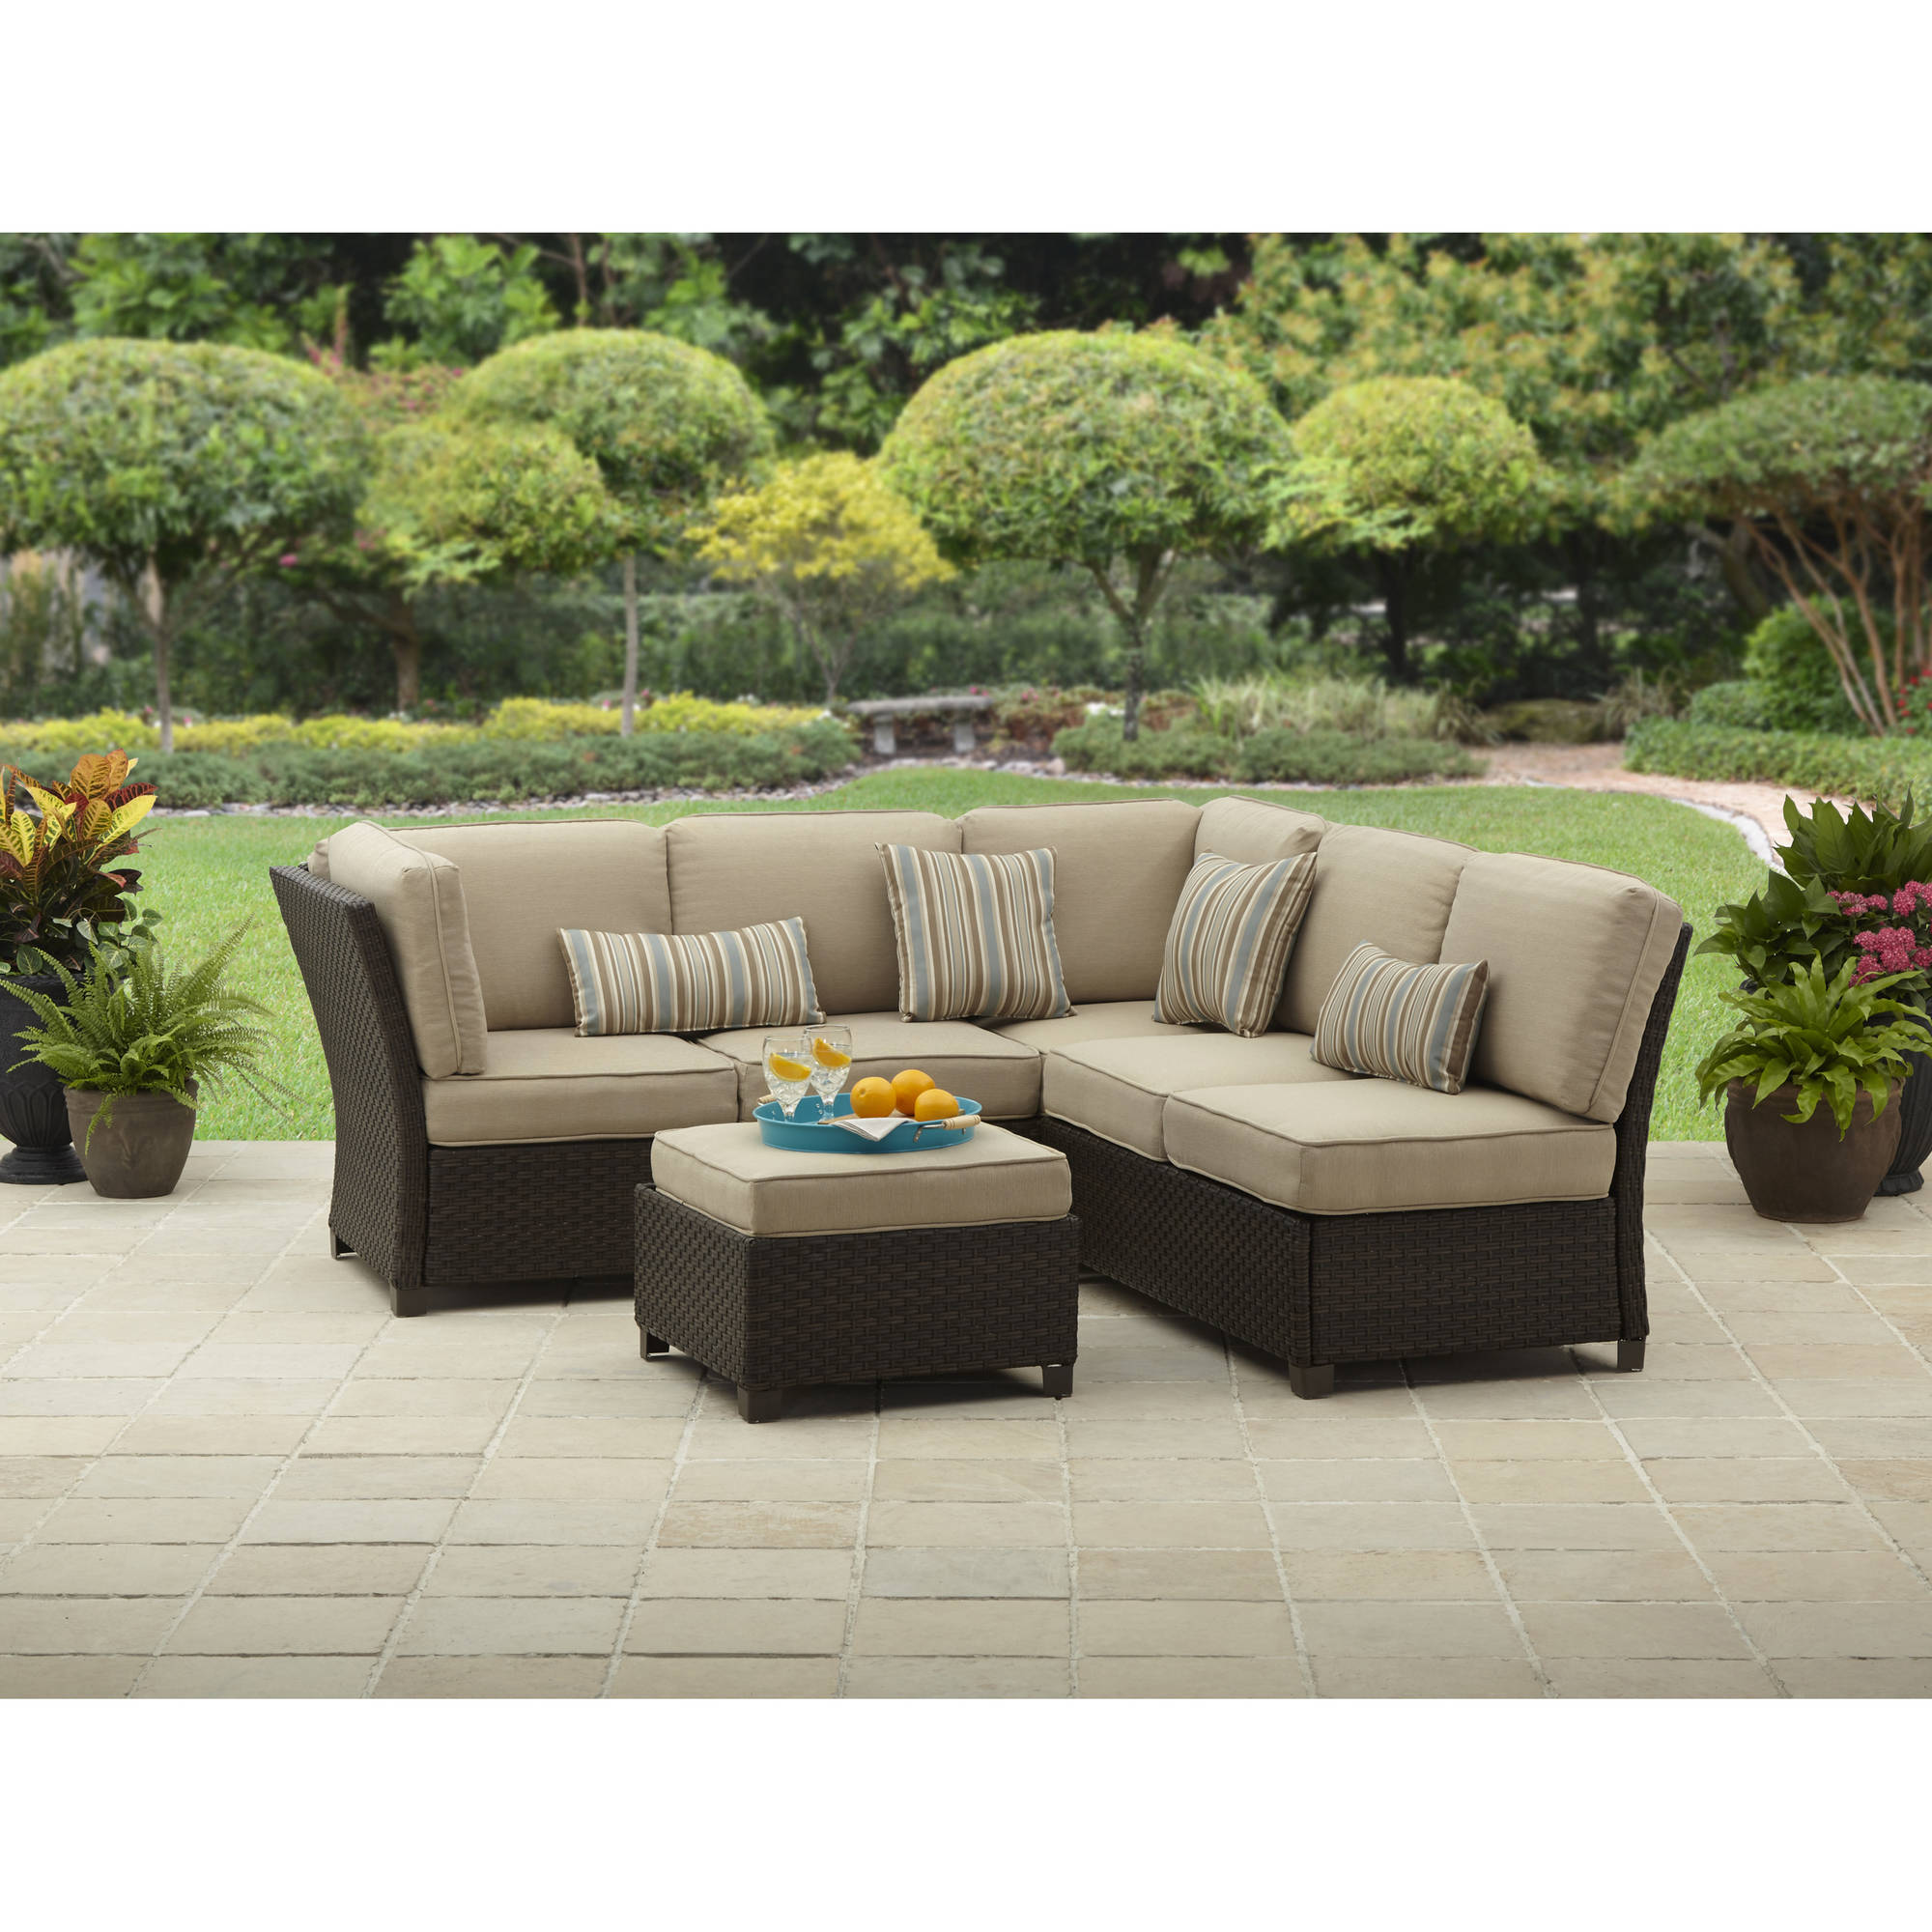 Great Better Homes And Gardens Oak Terrace 4 Piece Outdoor Conversation Set    Walmart.com